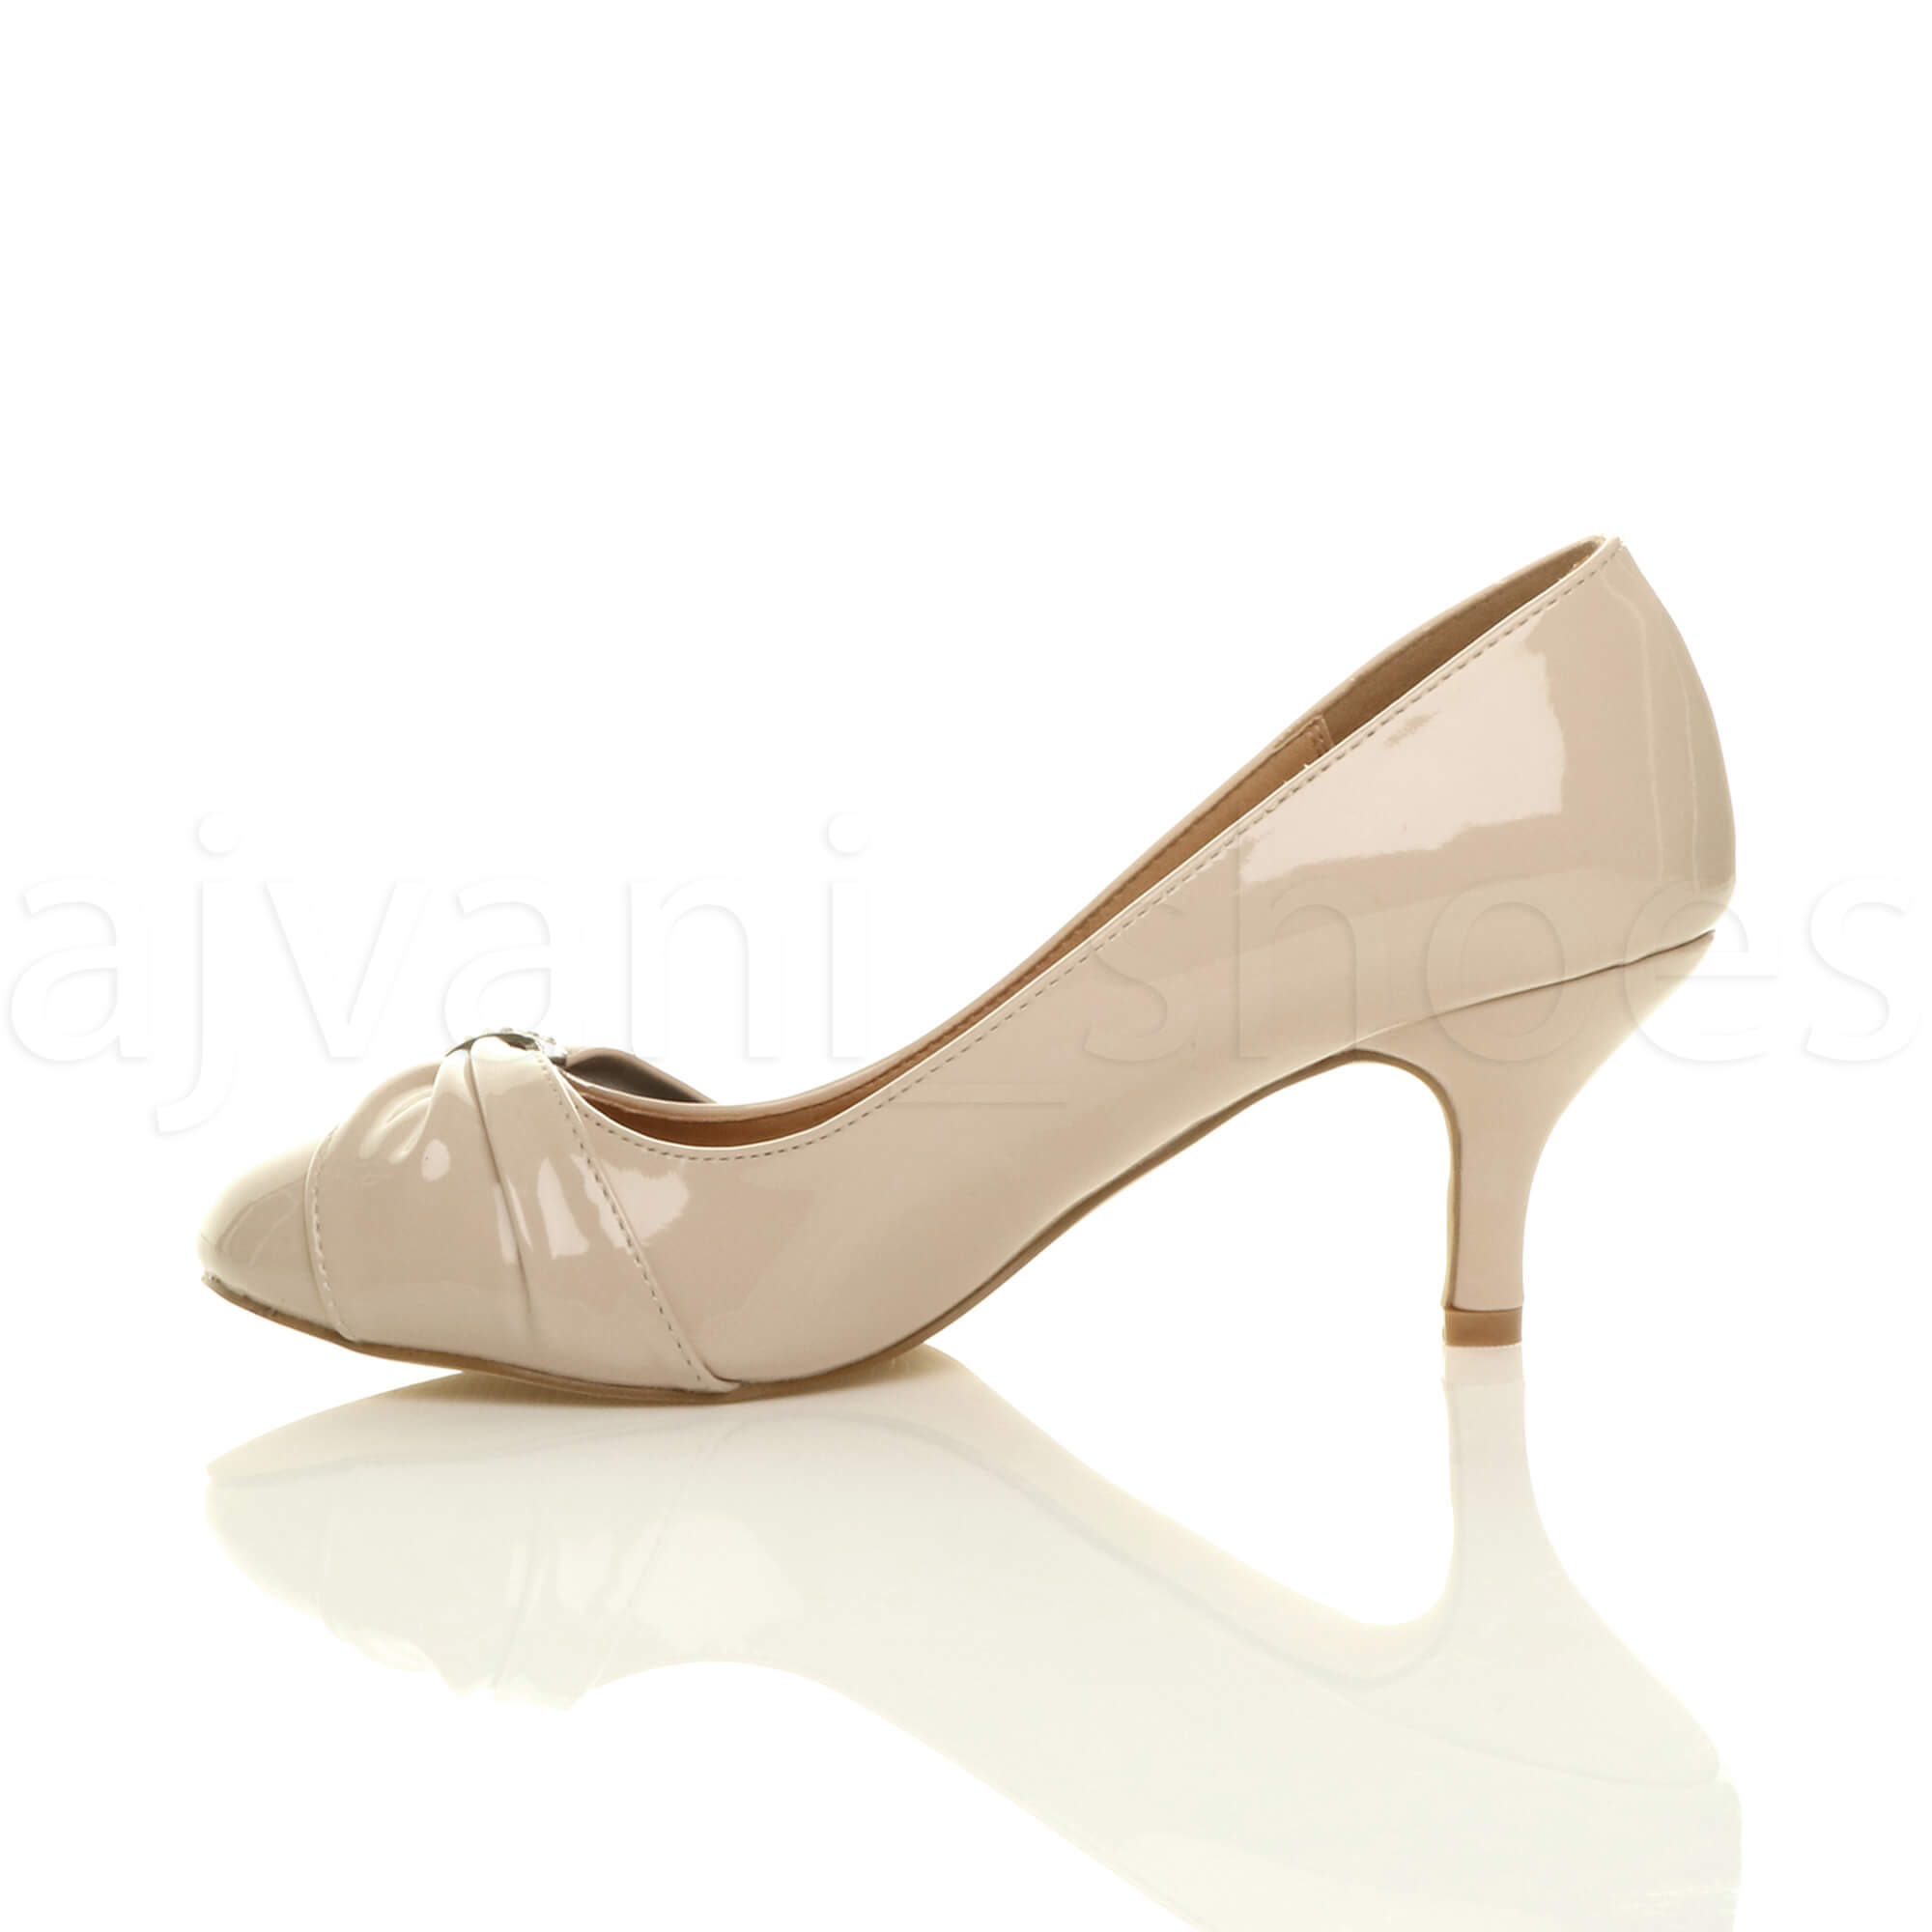 WOMENS-LADIES-MID-HEEL-RUCHED-DIAMANTE-WEDDING-PROM-EVENING-COURT-SHOES-SIZE thumbnail 68